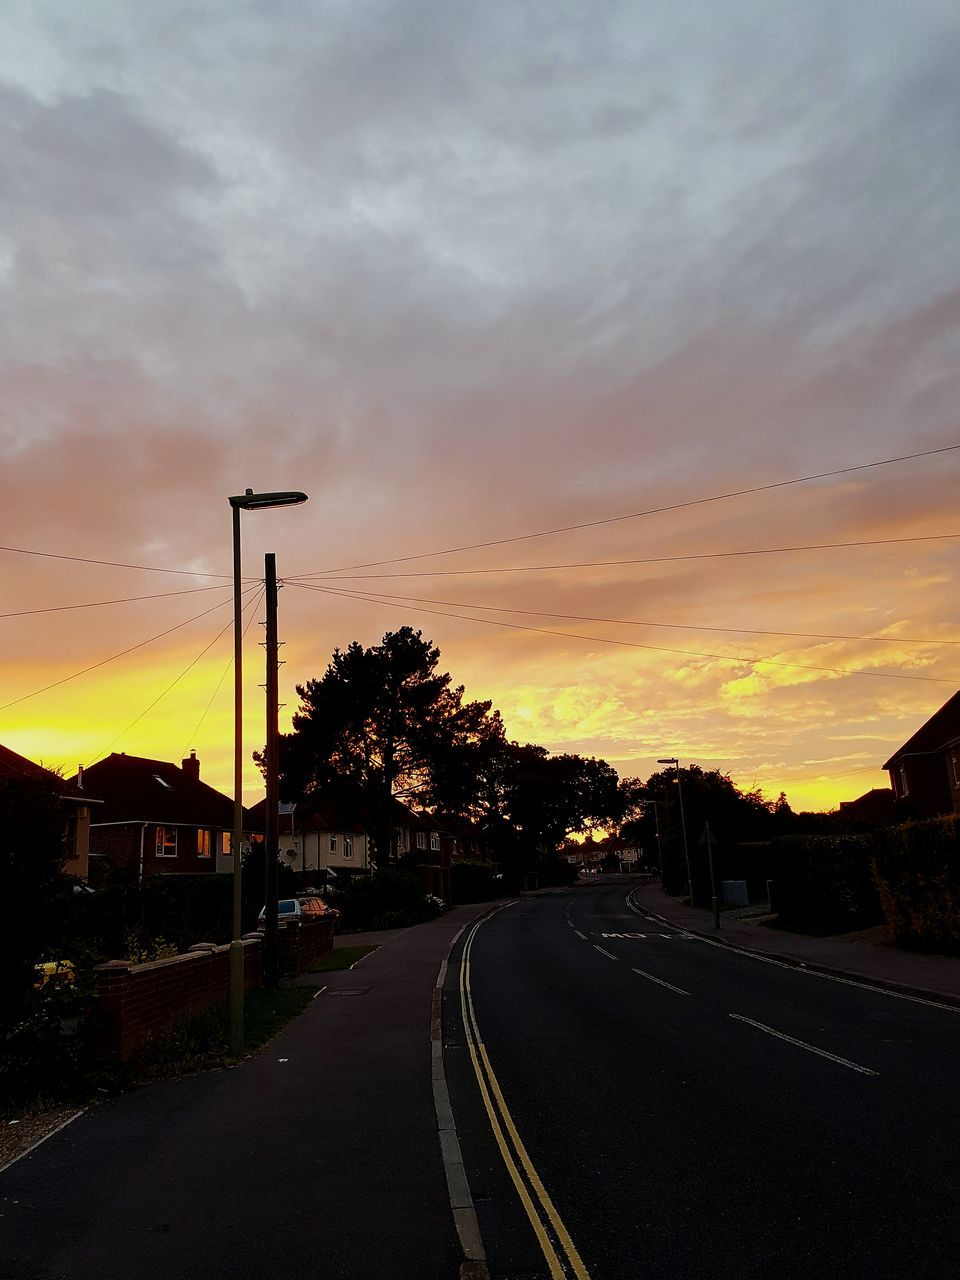 sunset, road, transportation, the way forward, sky, cloud - sky, no people, silhouette, scenics, nature, outdoors, tree, beauty in nature, day